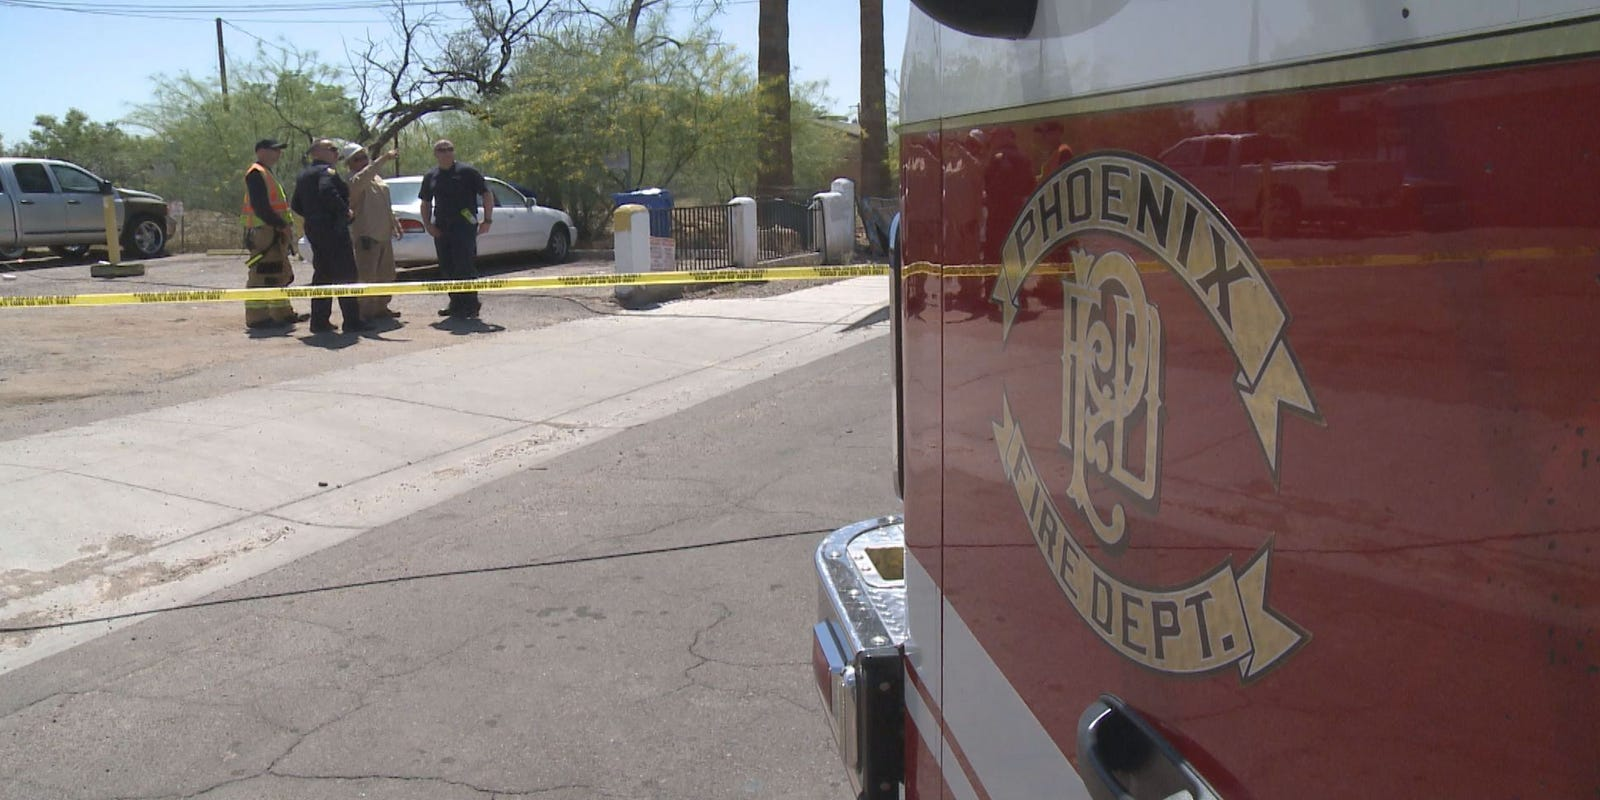 Exclusive: Behind the scenes at Phoenix busiest fire station